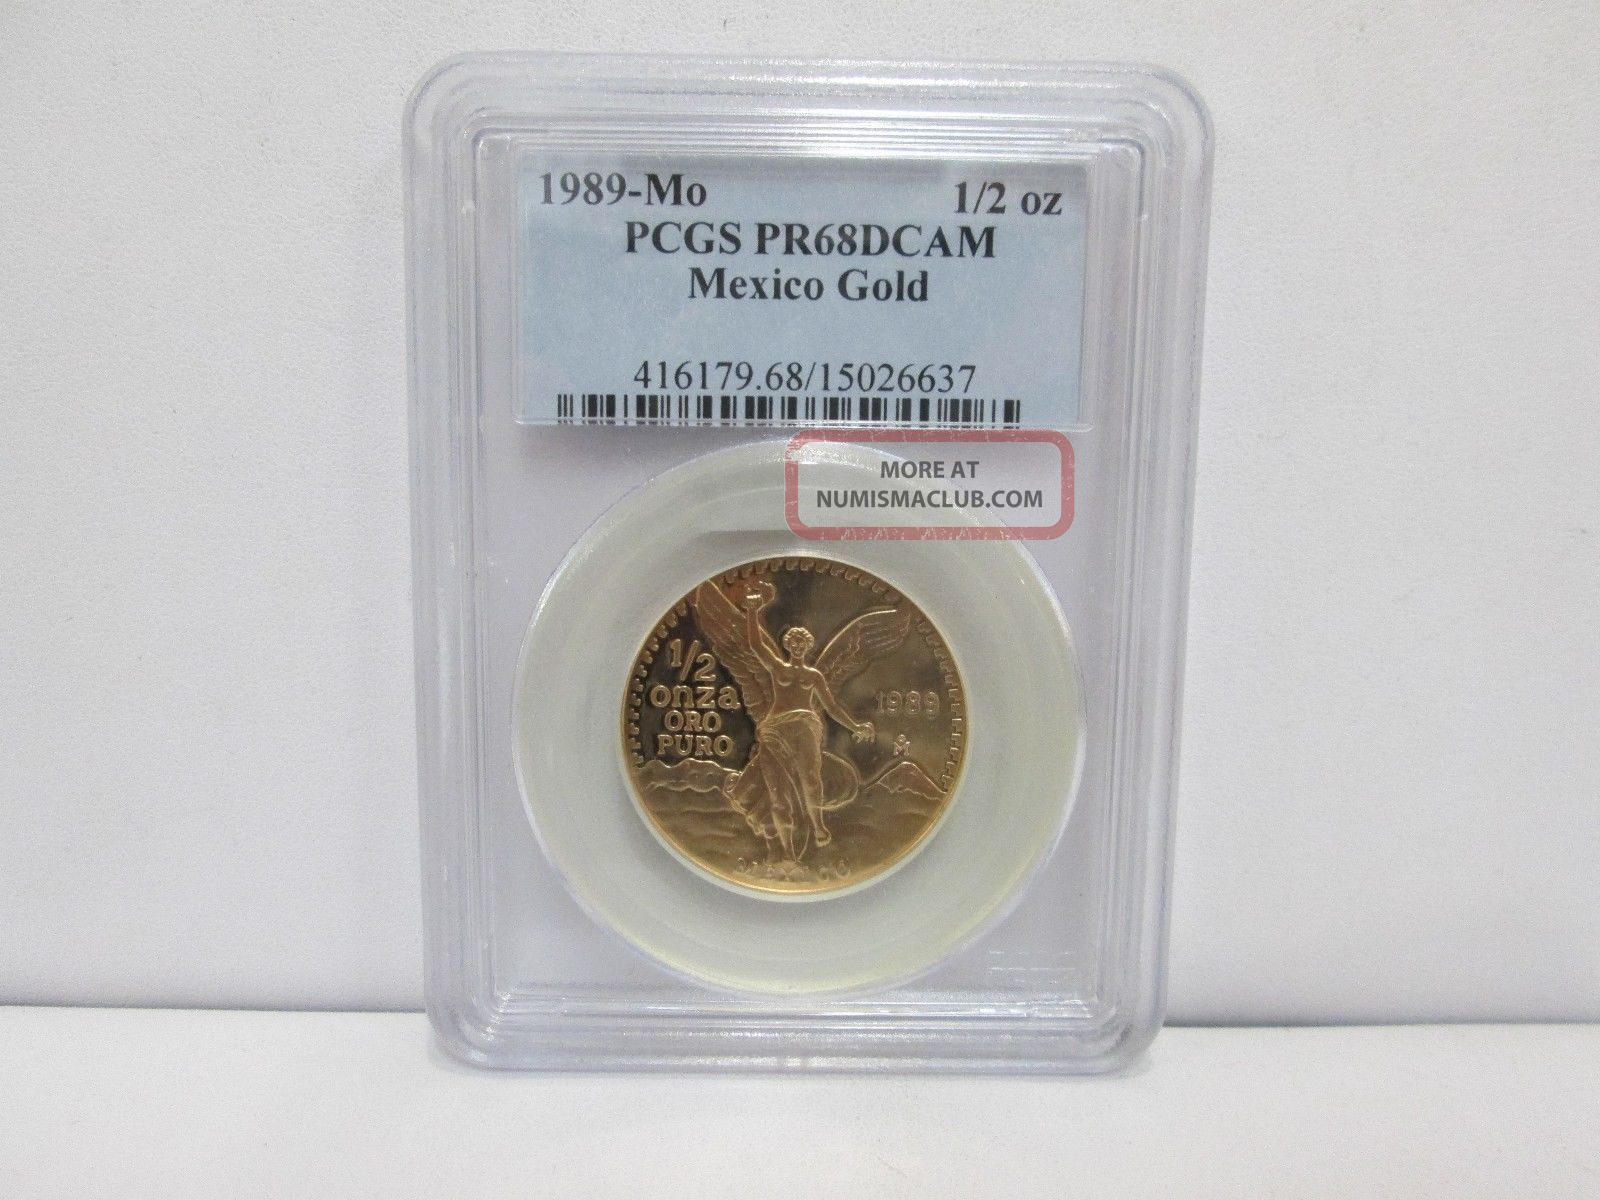 1989 - Mo Mexican 1/2 Onza Gold Proof - Pcgs Pr68dcam Coins: World photo